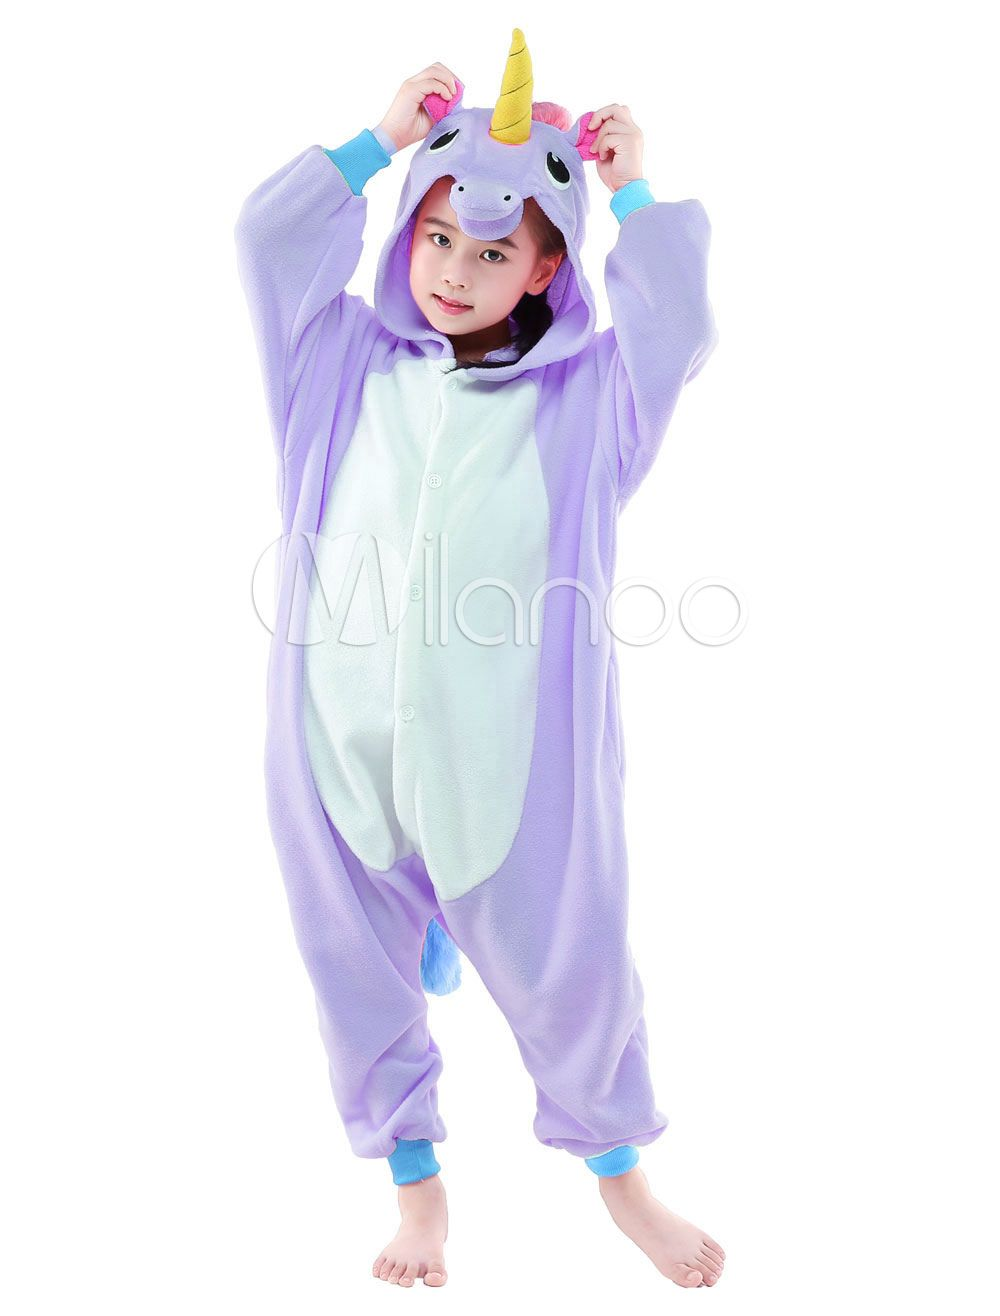 combinaison pyjama licorne rose textile polaire kigurumi enfant halloween deguisement. Black Bedroom Furniture Sets. Home Design Ideas